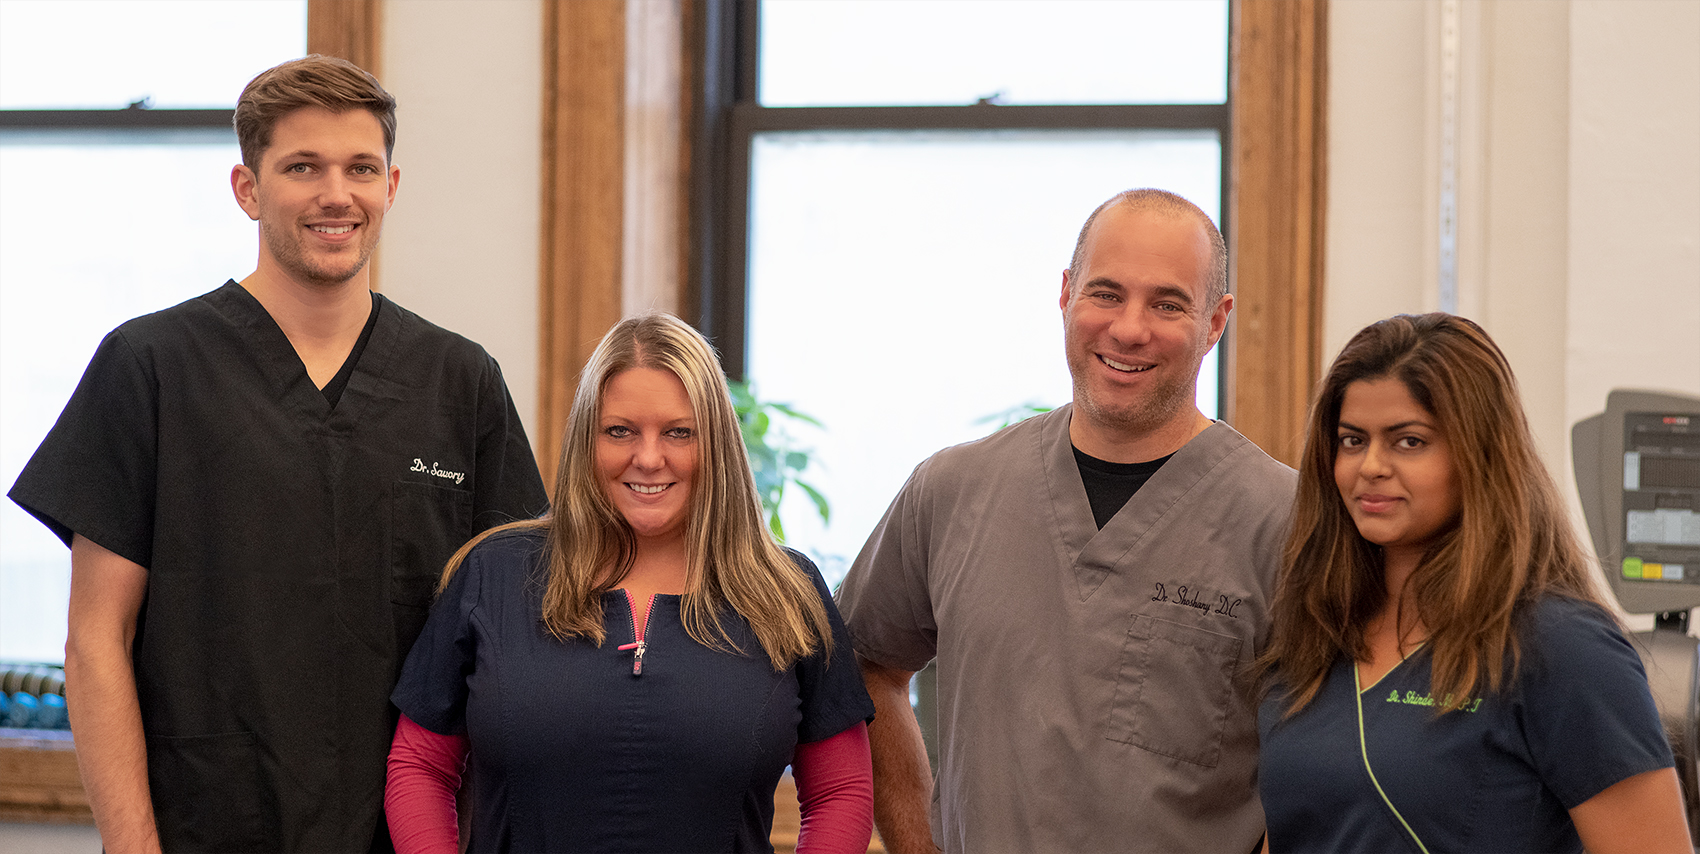 dr shoshany and his team of chiropractors, physical therapists, and massage therapists